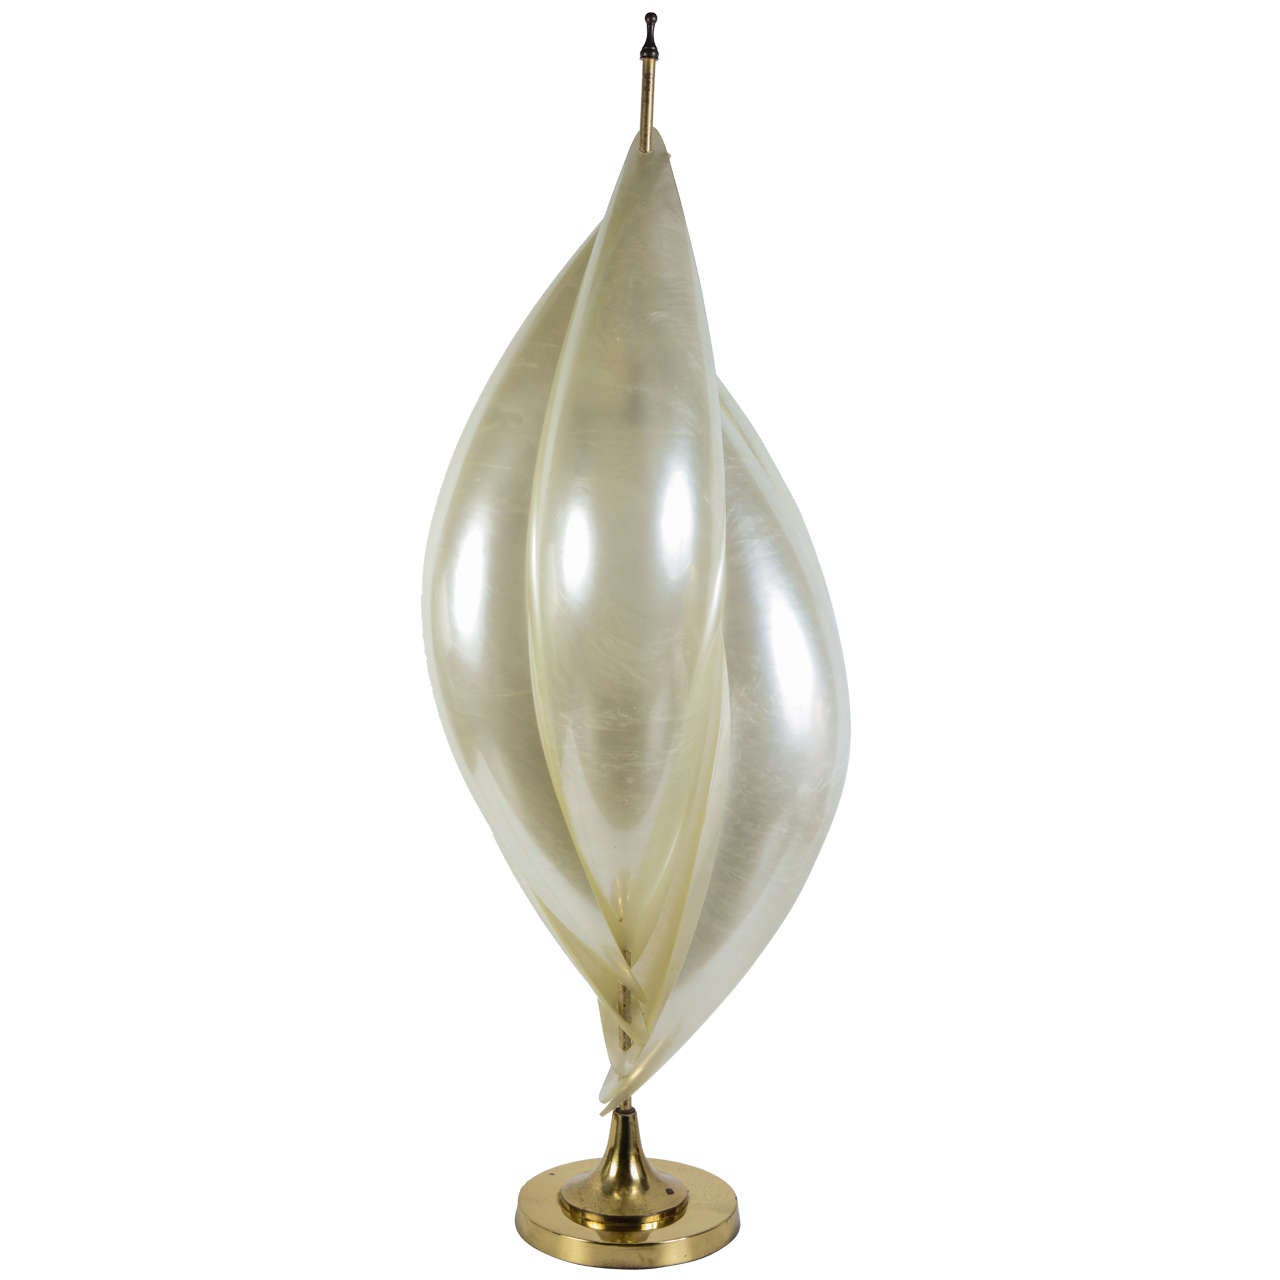 unusual table lamp by rougiers for sale at 1stdibs